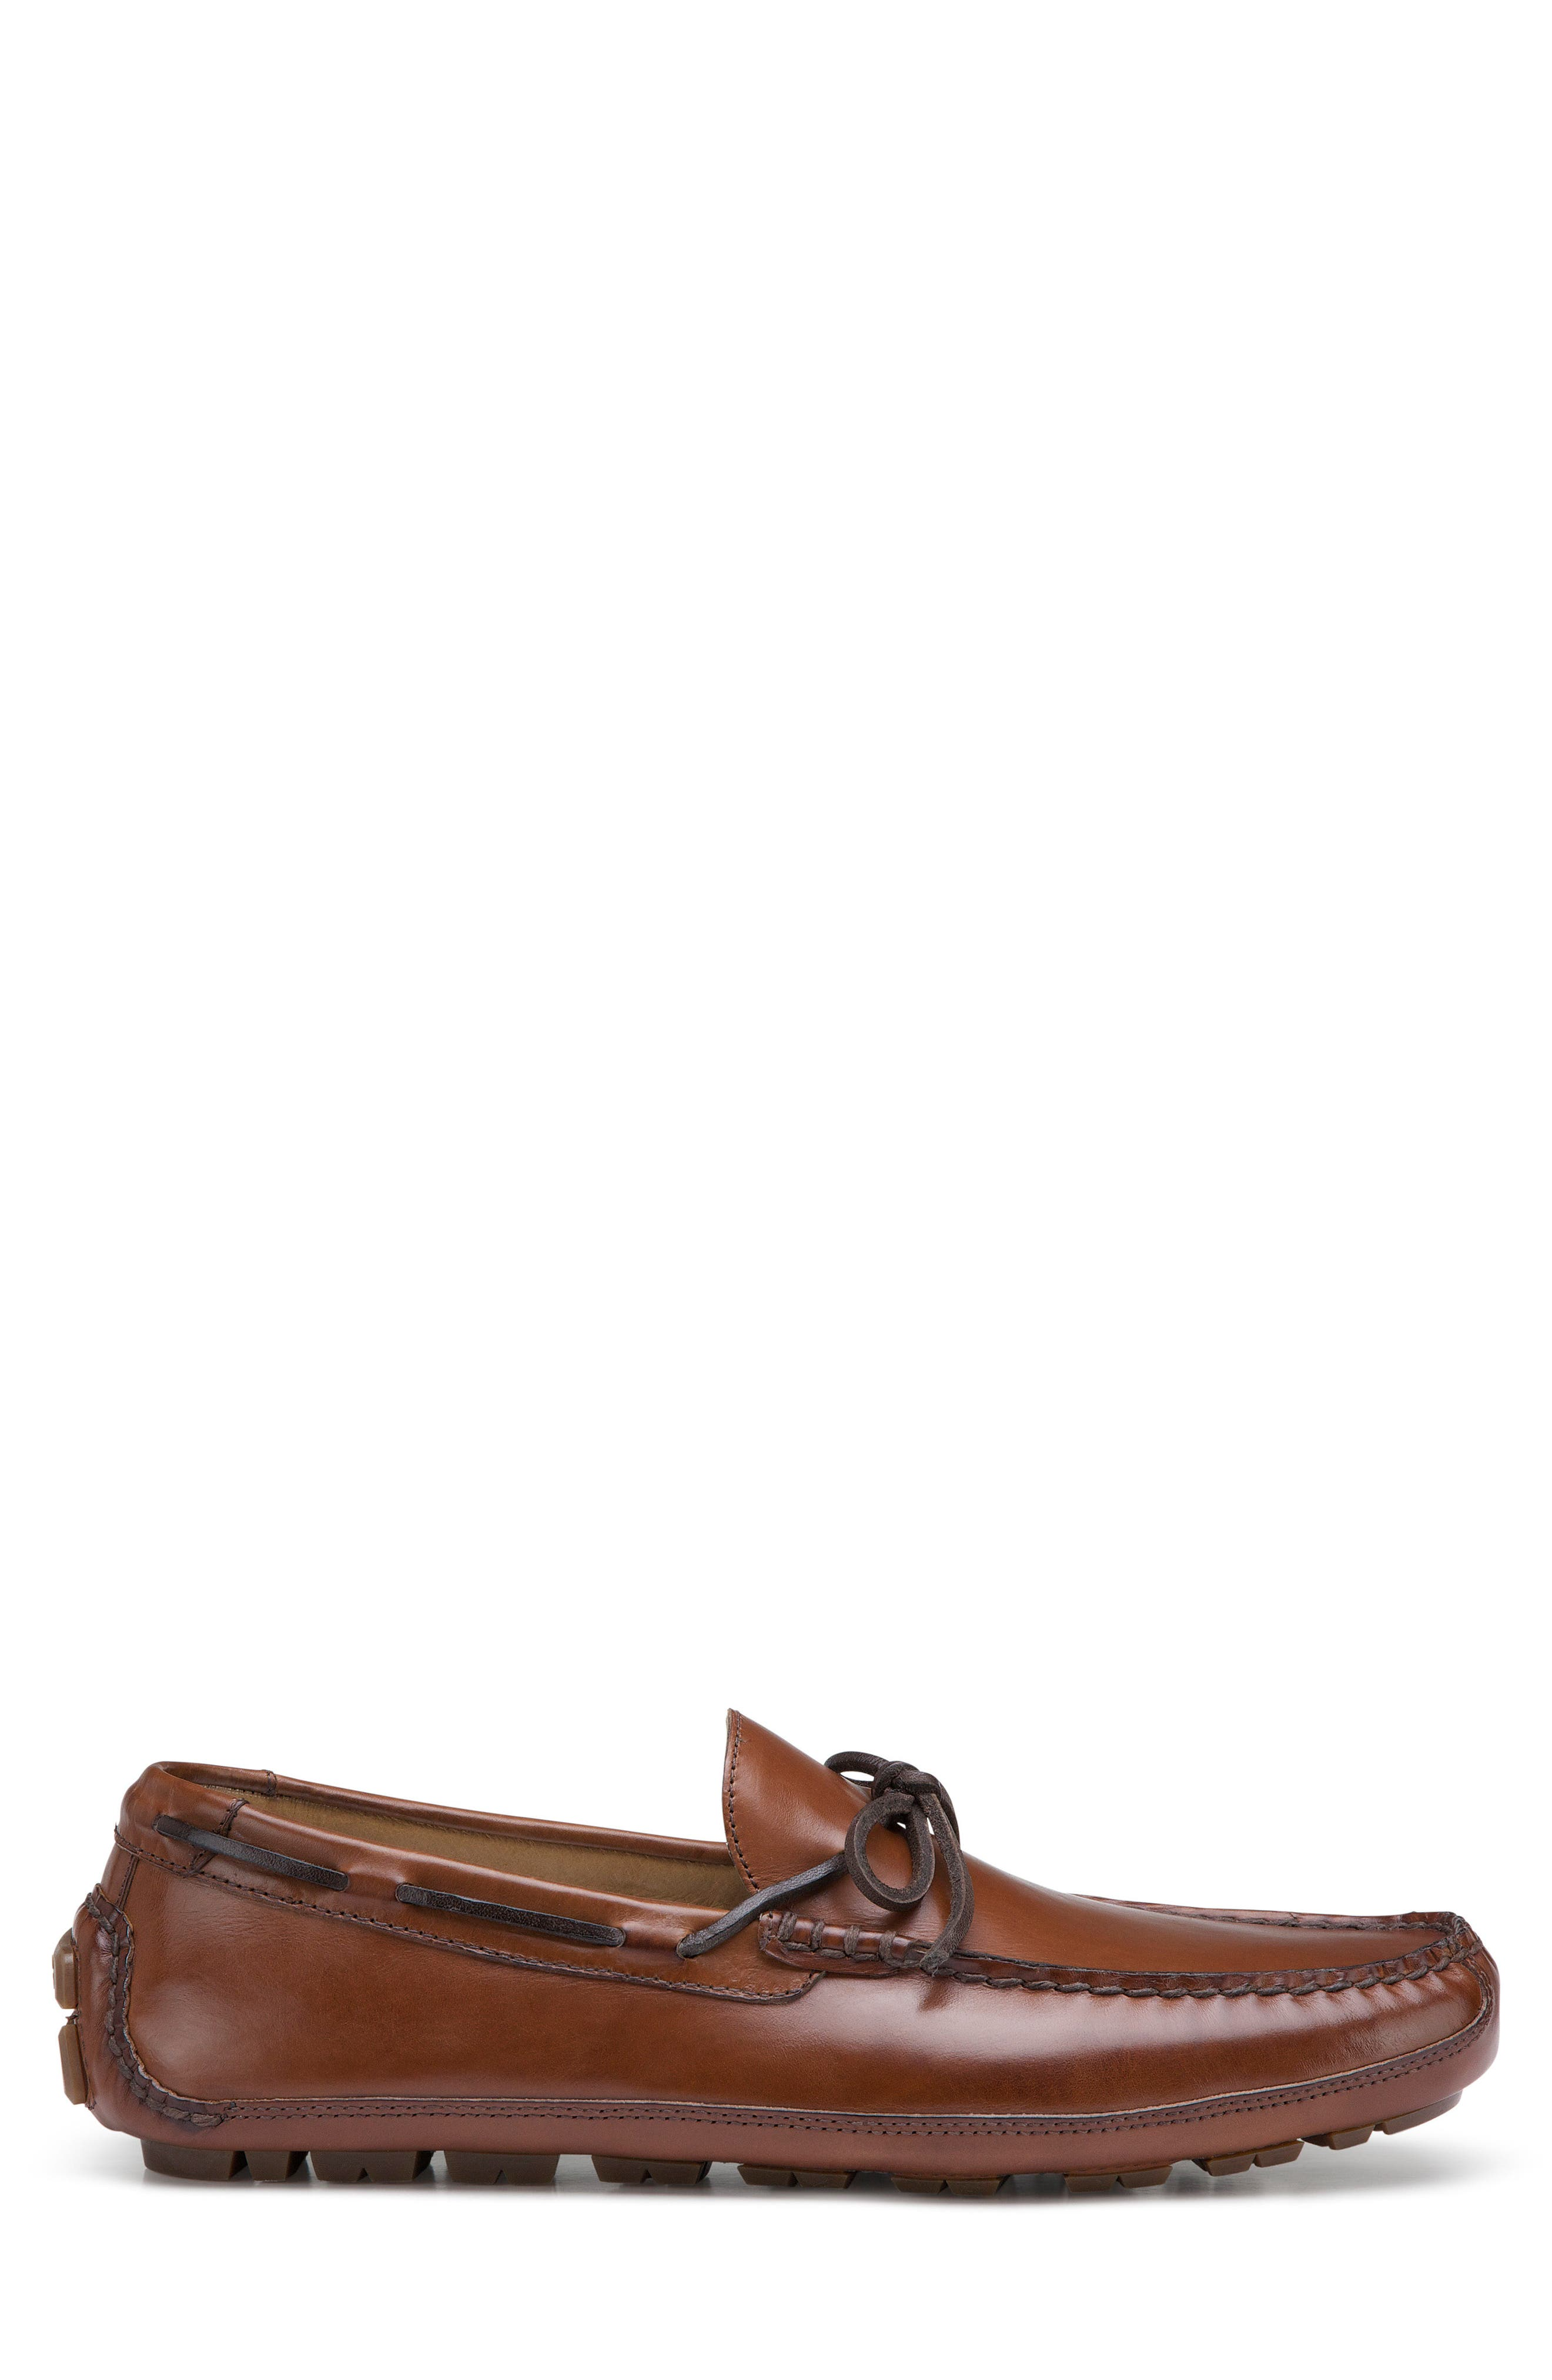 TRASK, Dillion Driving Loafer, Alternate thumbnail 2, color, BROWN LEATHER